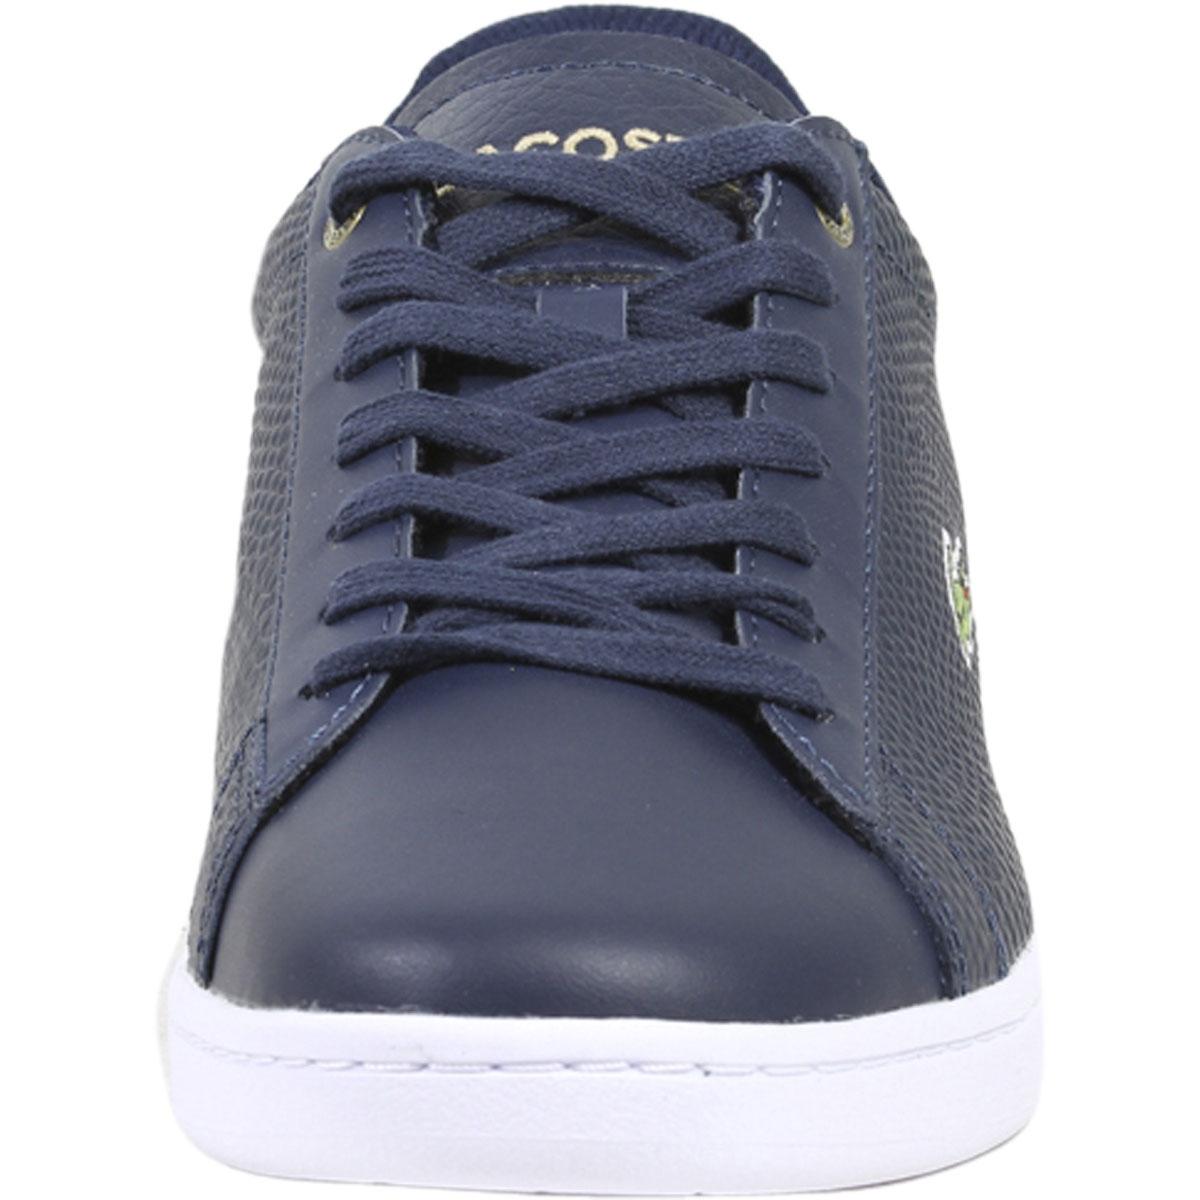 Lacoste-Men-039-s-Carnaby-EVO-118-Trainers-Sneakers-Shoes thumbnail 16